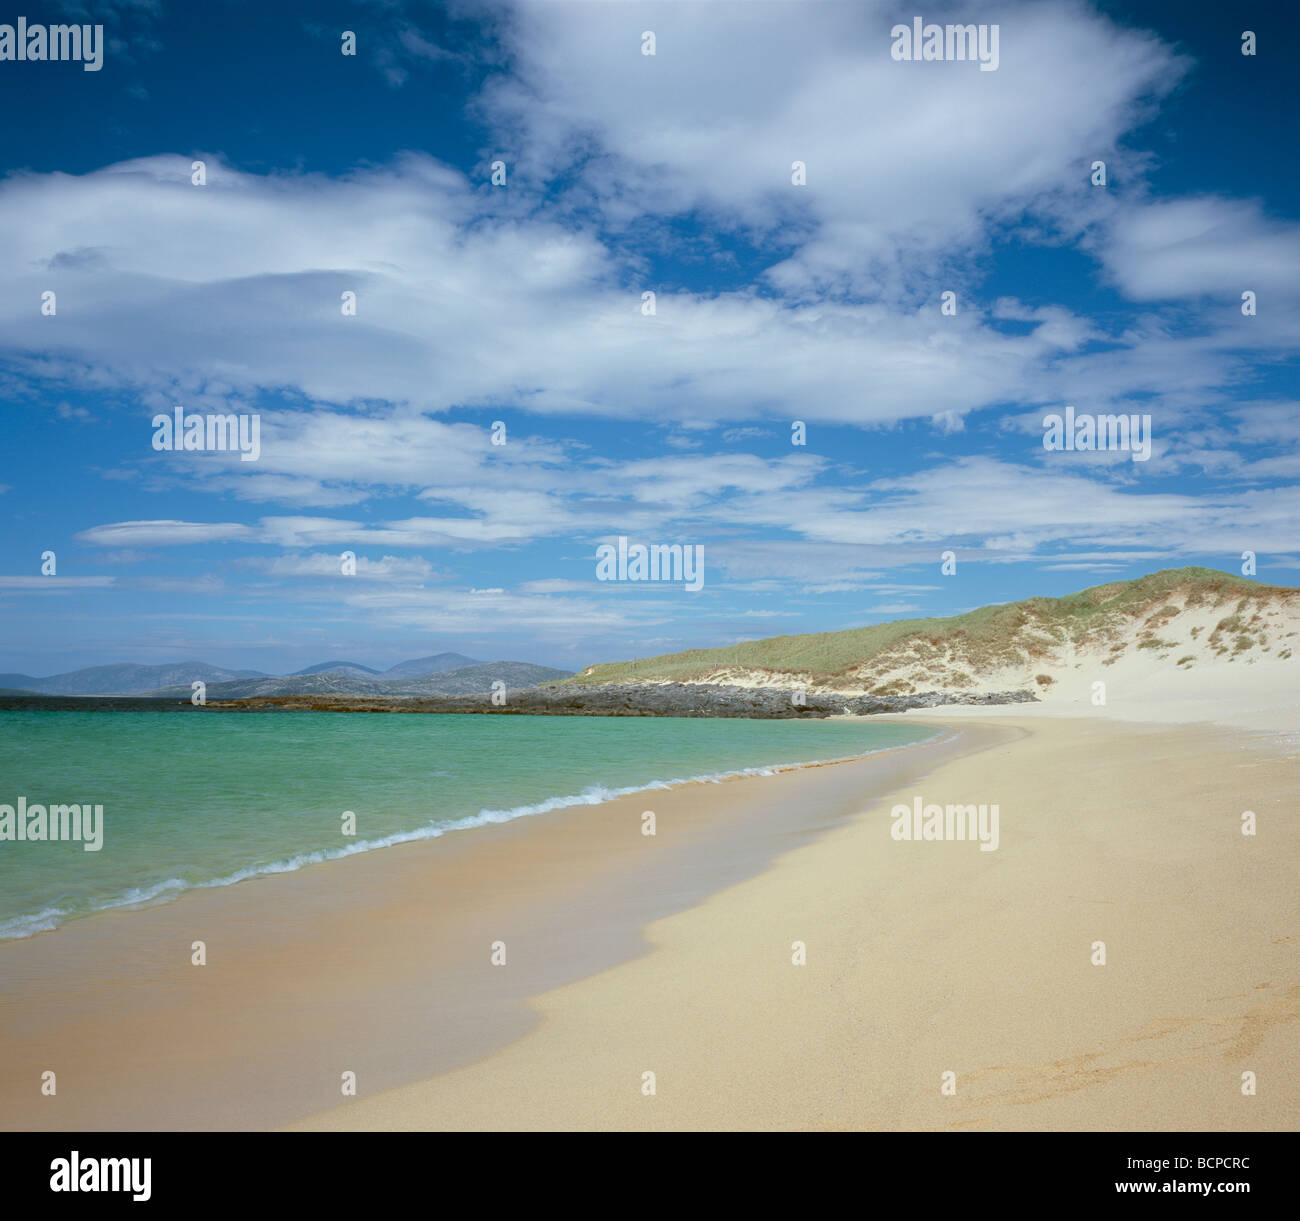 Scarista beach, island of Harris, Western Isles, Scotland. - Stock Image